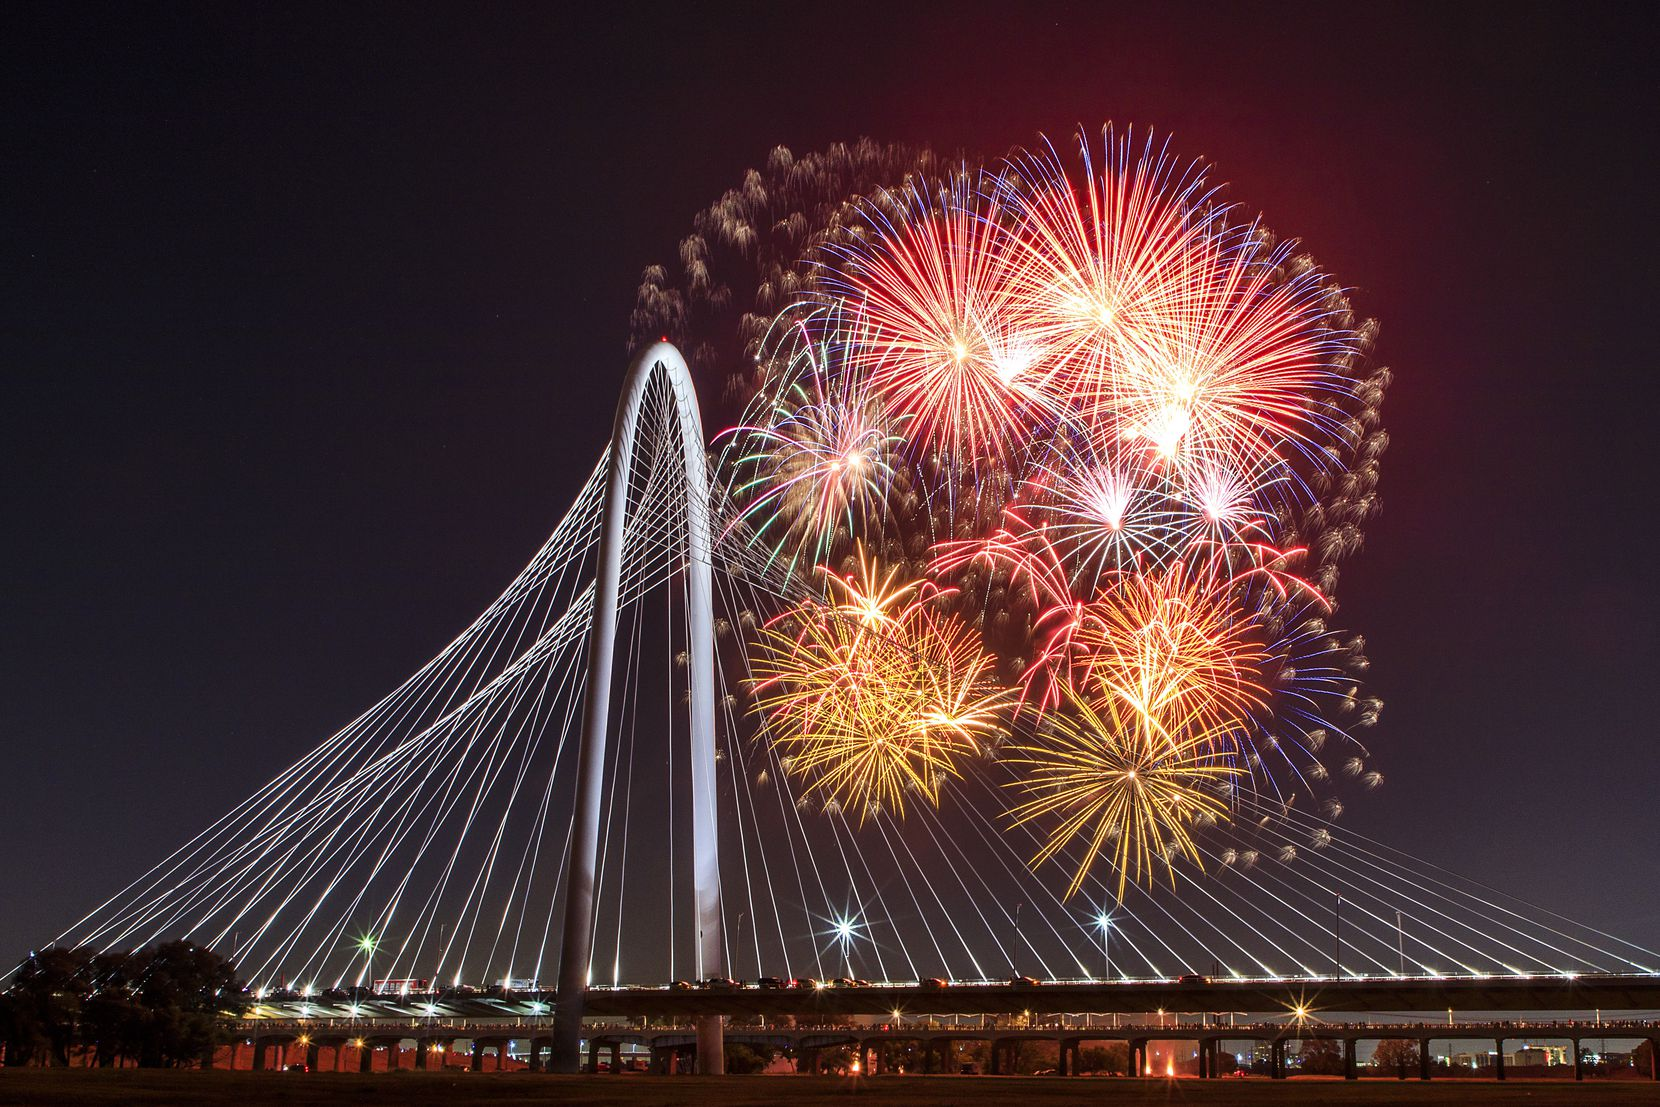 Fireworks exploded over the Margaret Hunt Hill Bridge in July 2018.